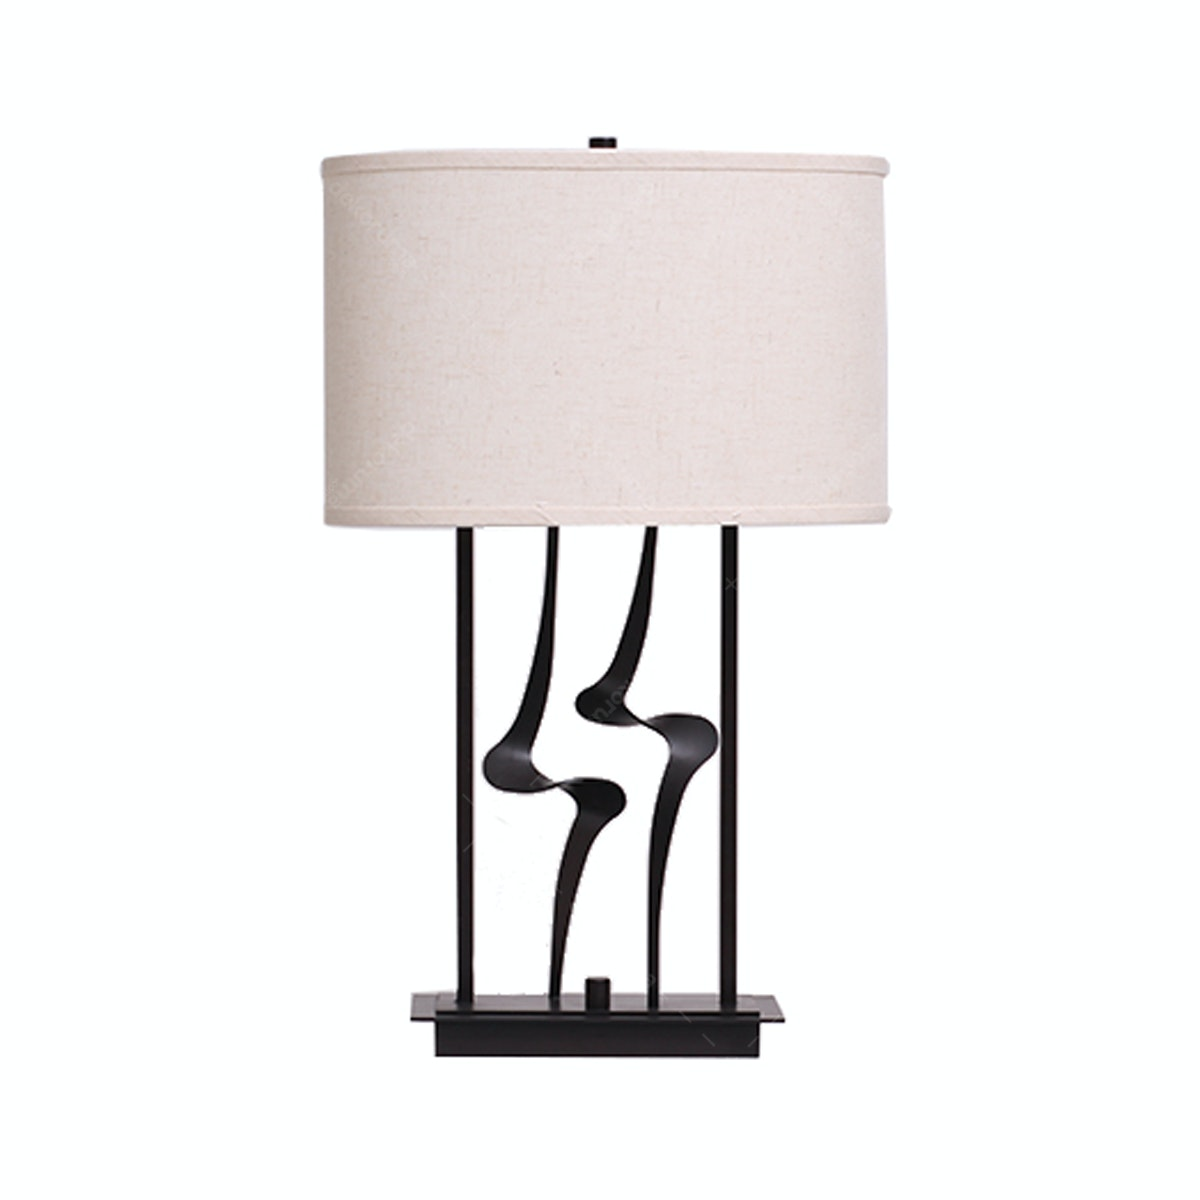 Thema Home Table Lamp 1424 MI